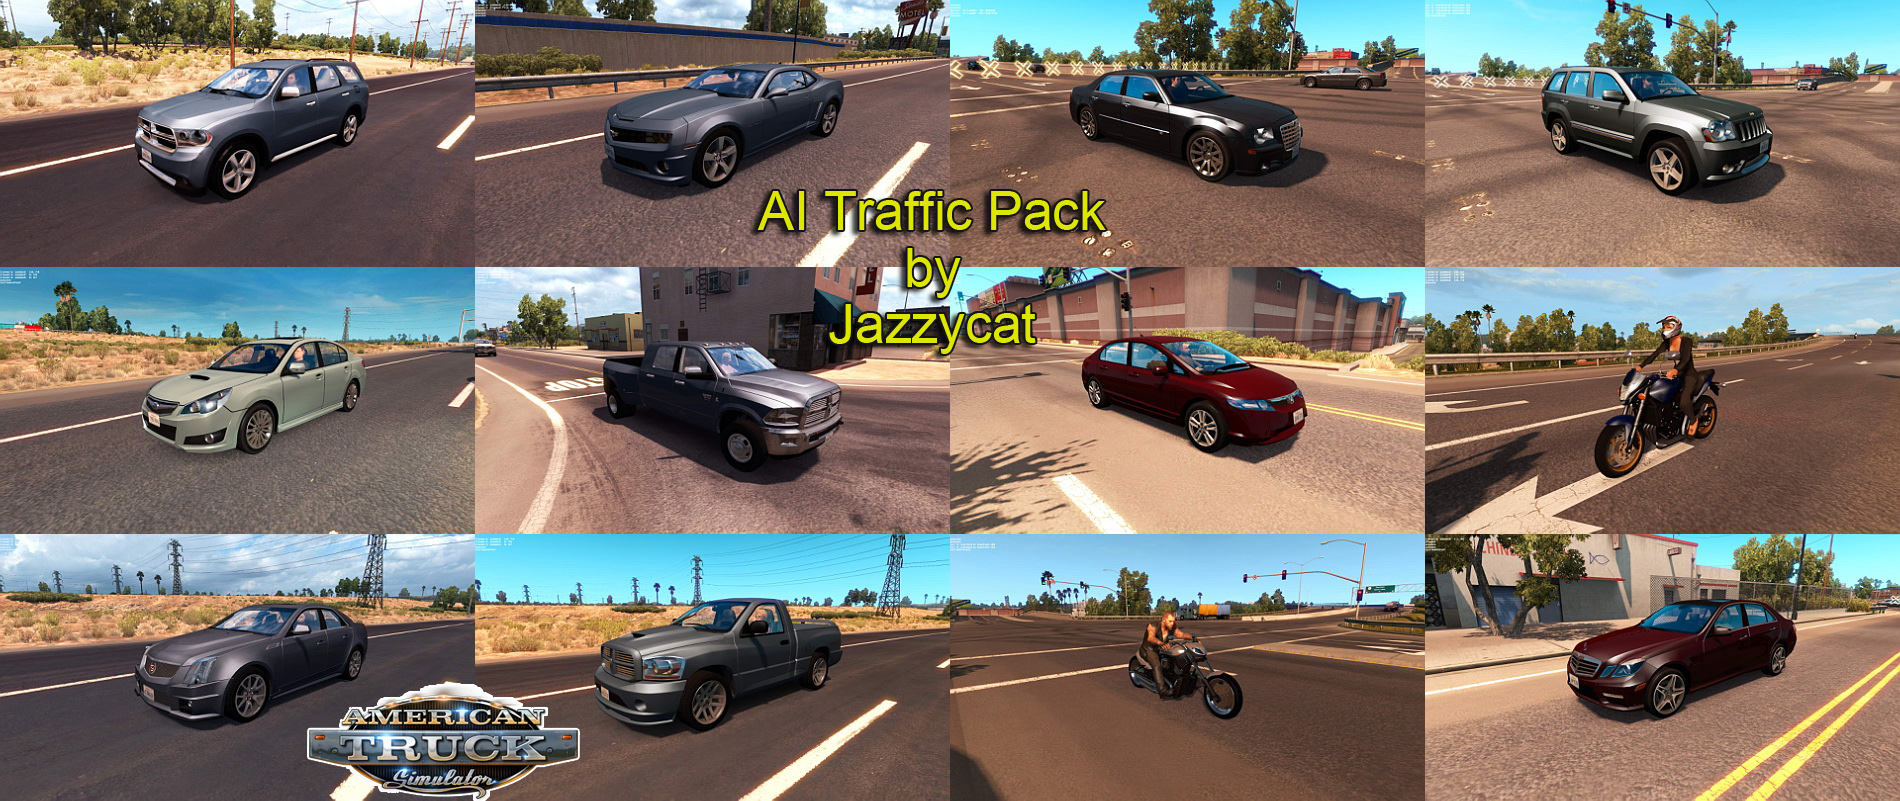 03_ai_traffic_pack_by_Jazzycat_v1.2.jpg